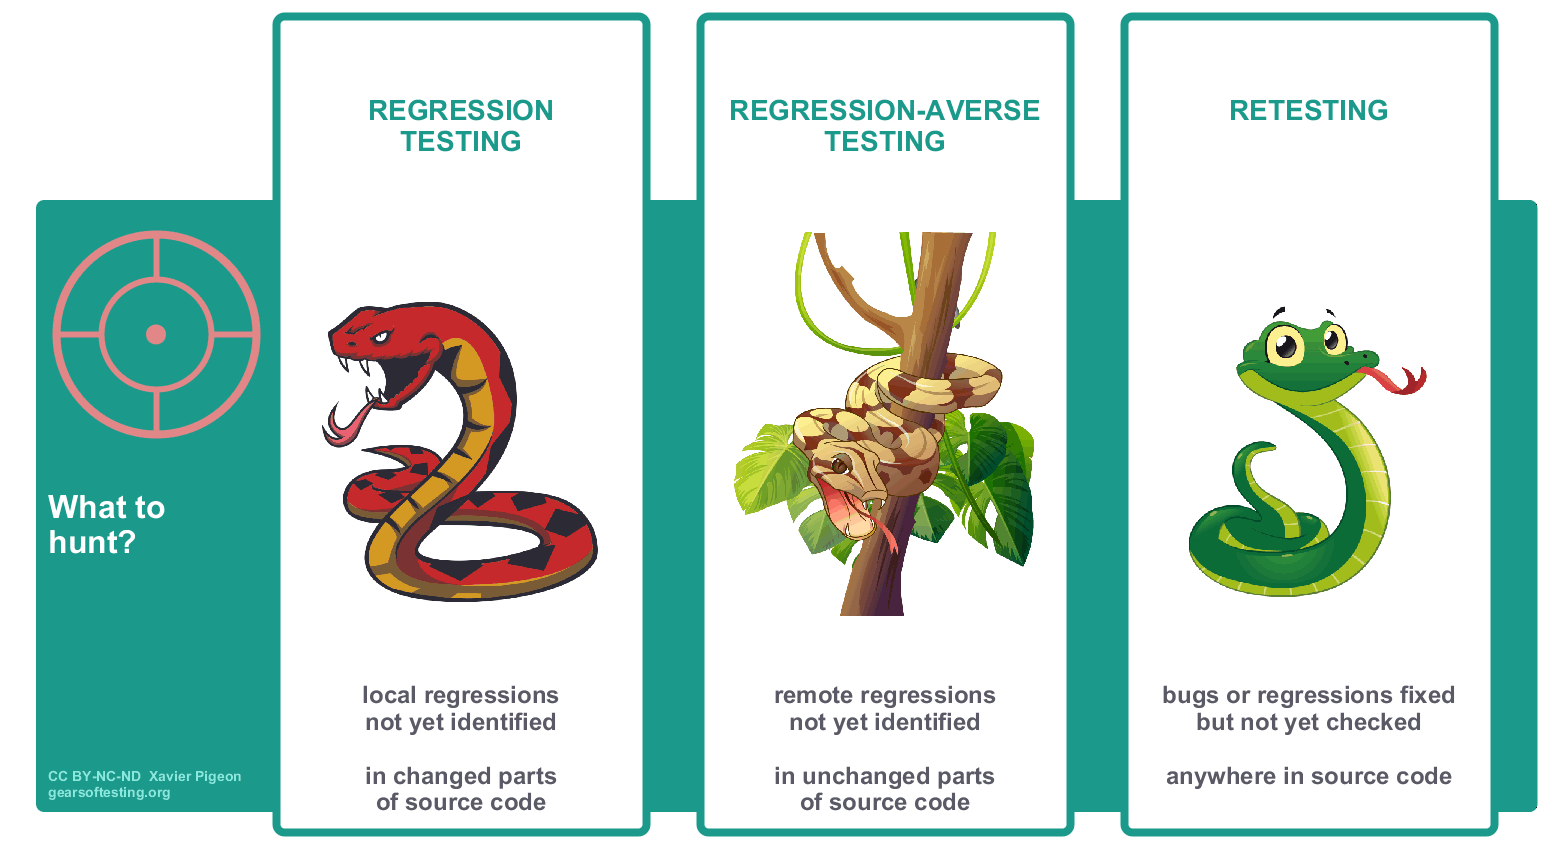 Regression testing vs regression-averse testing vs retesting: what to hunt?